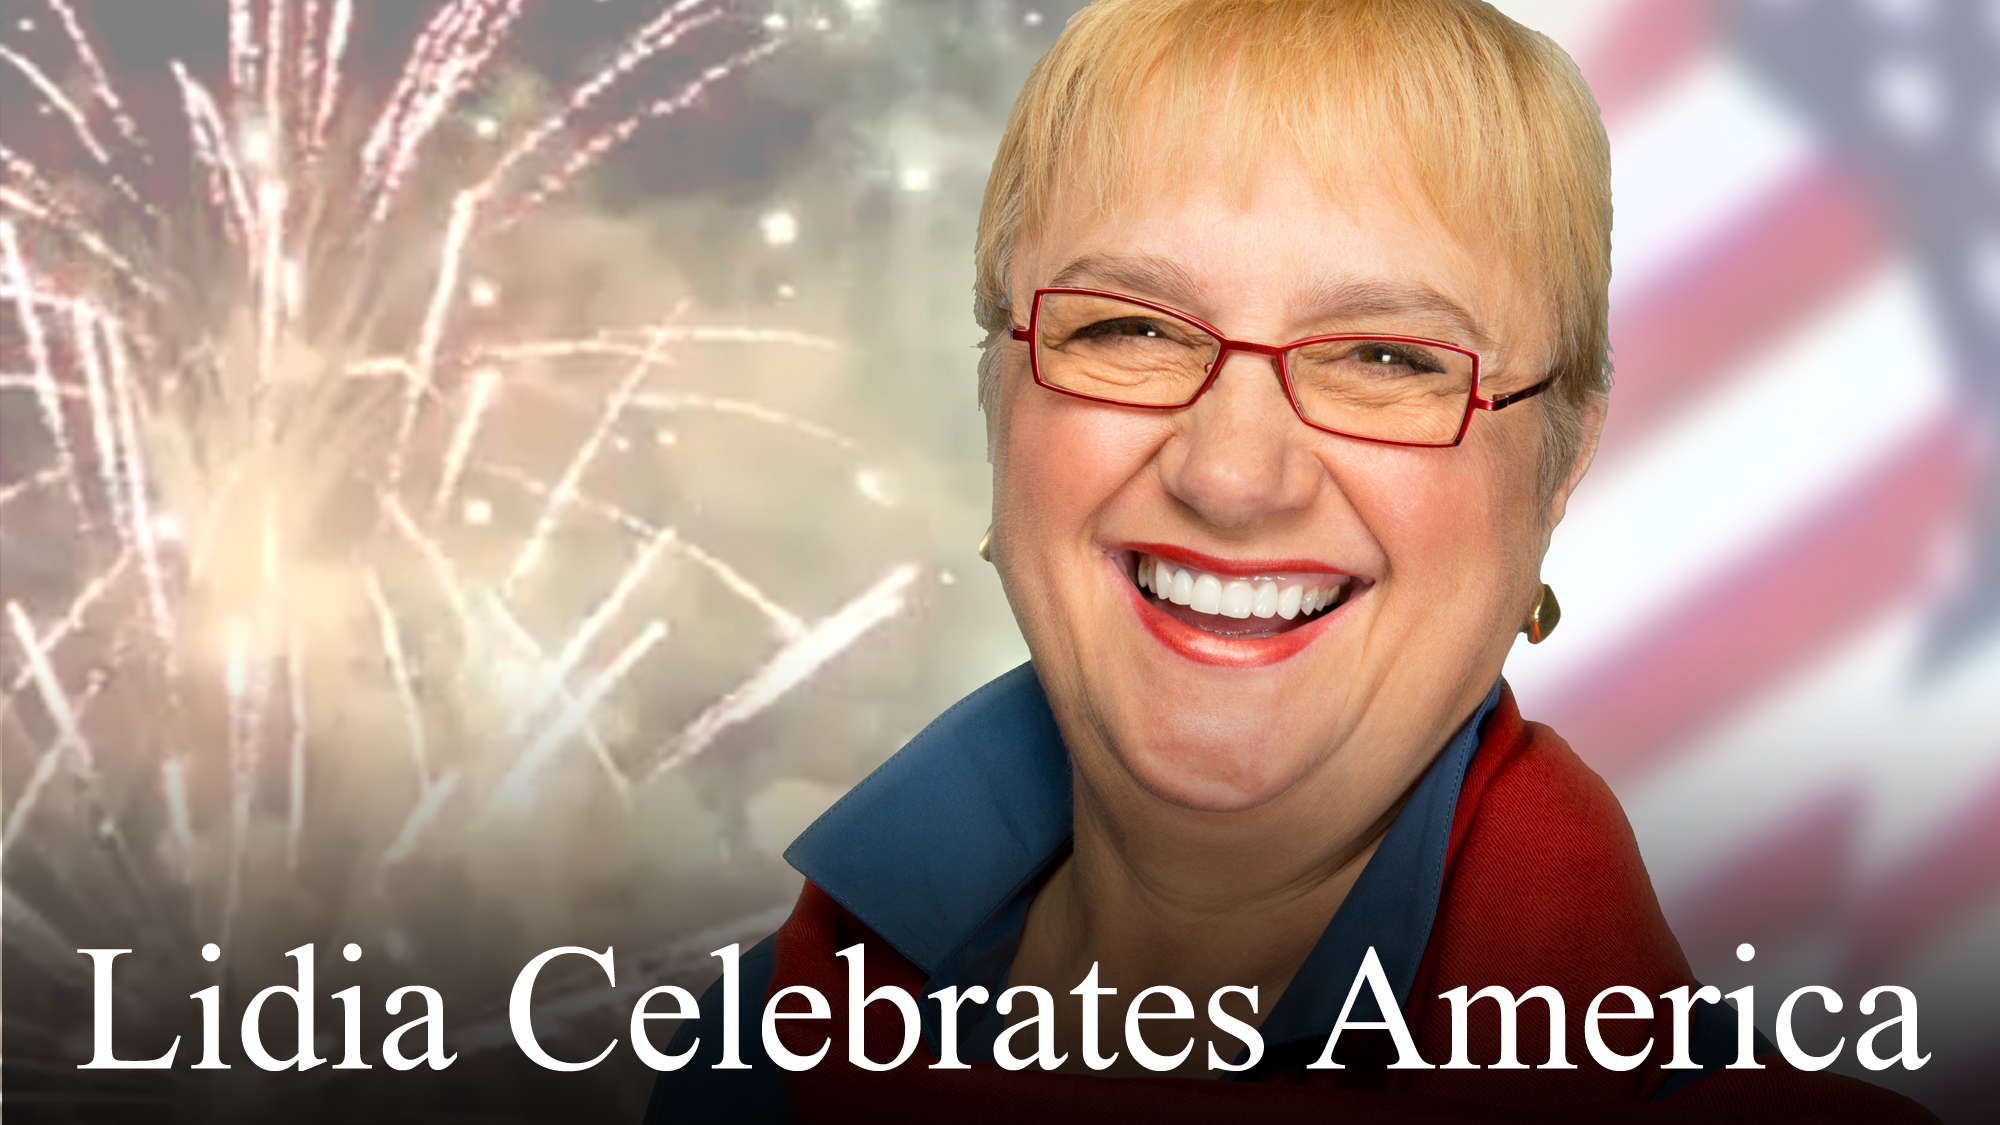 Lidia Celebrates America Lidia Bastianich continues her engaging cross-country journey of the United States to experience the exuberance of American culture.